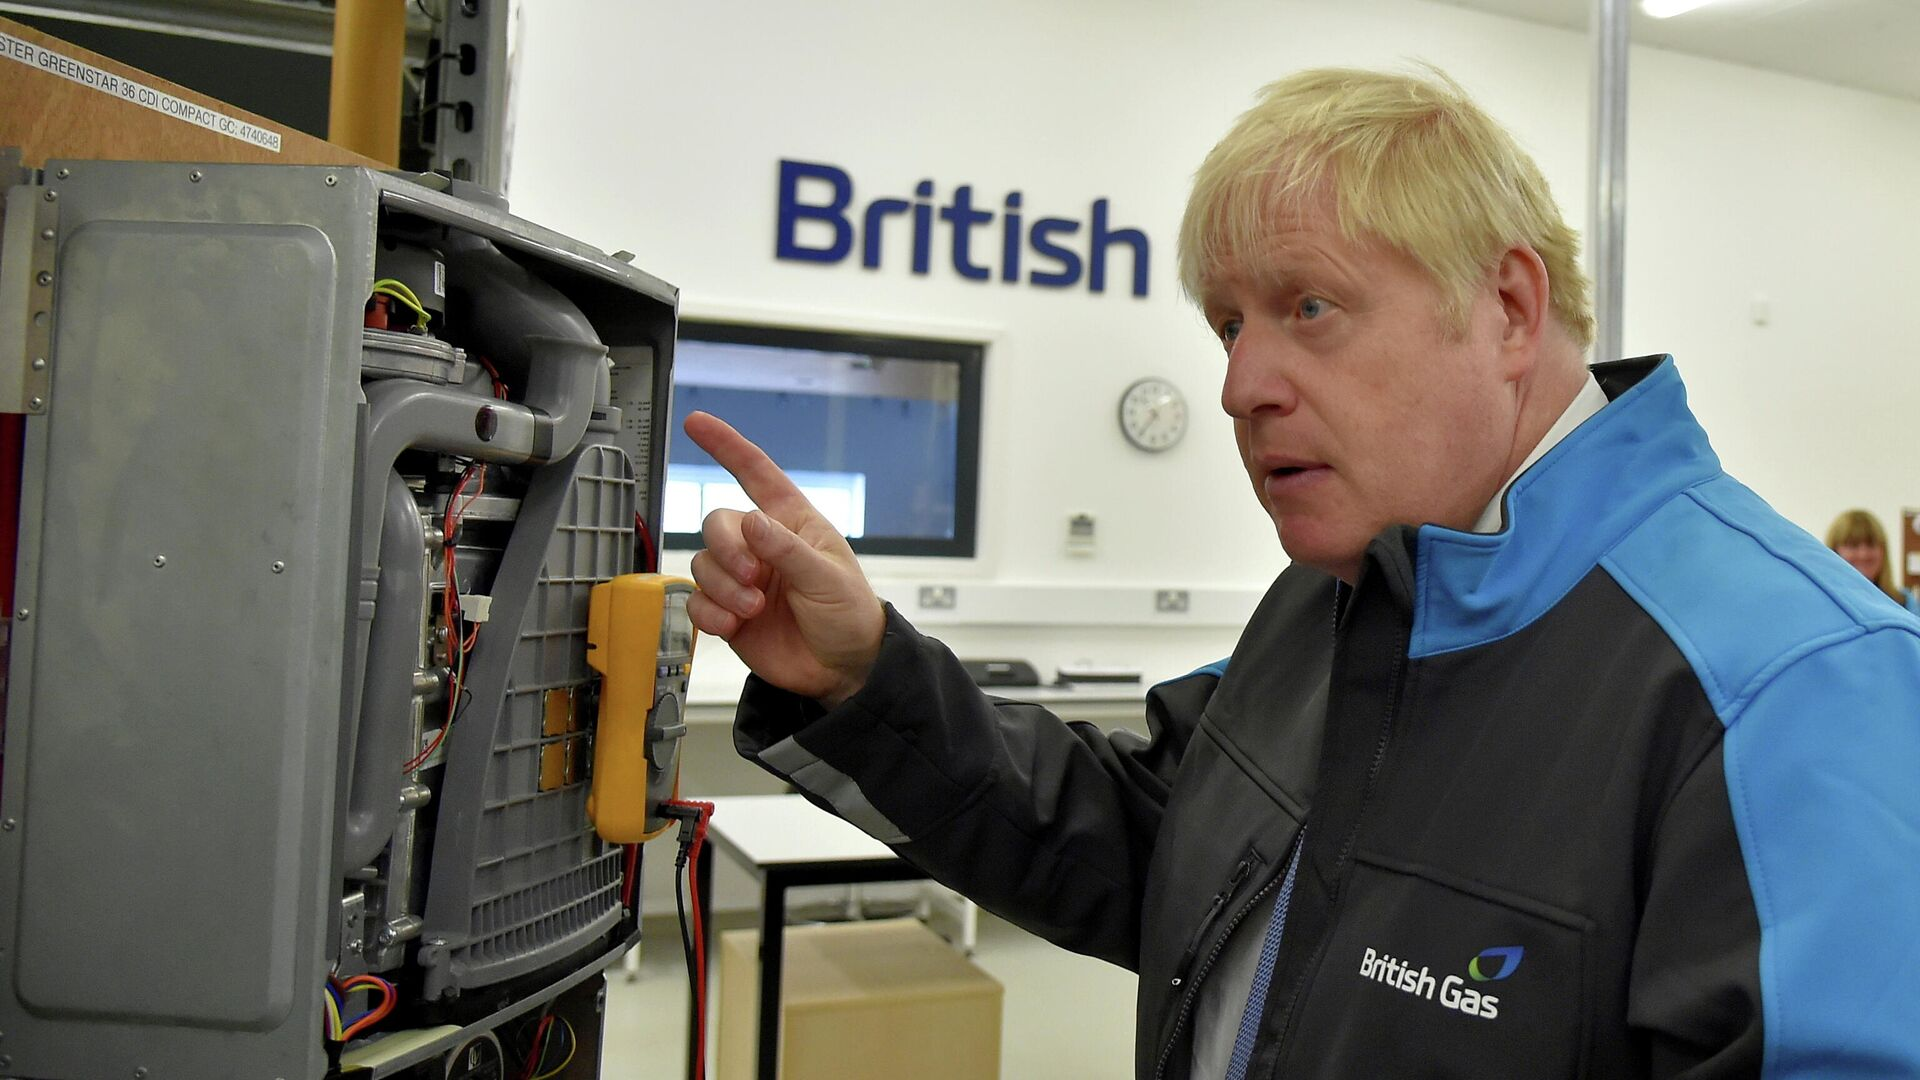 Boris Johnson gestures during a visit to a British Gas training academy in Leicestershire - Sputnik International, 1920, 14.09.2021